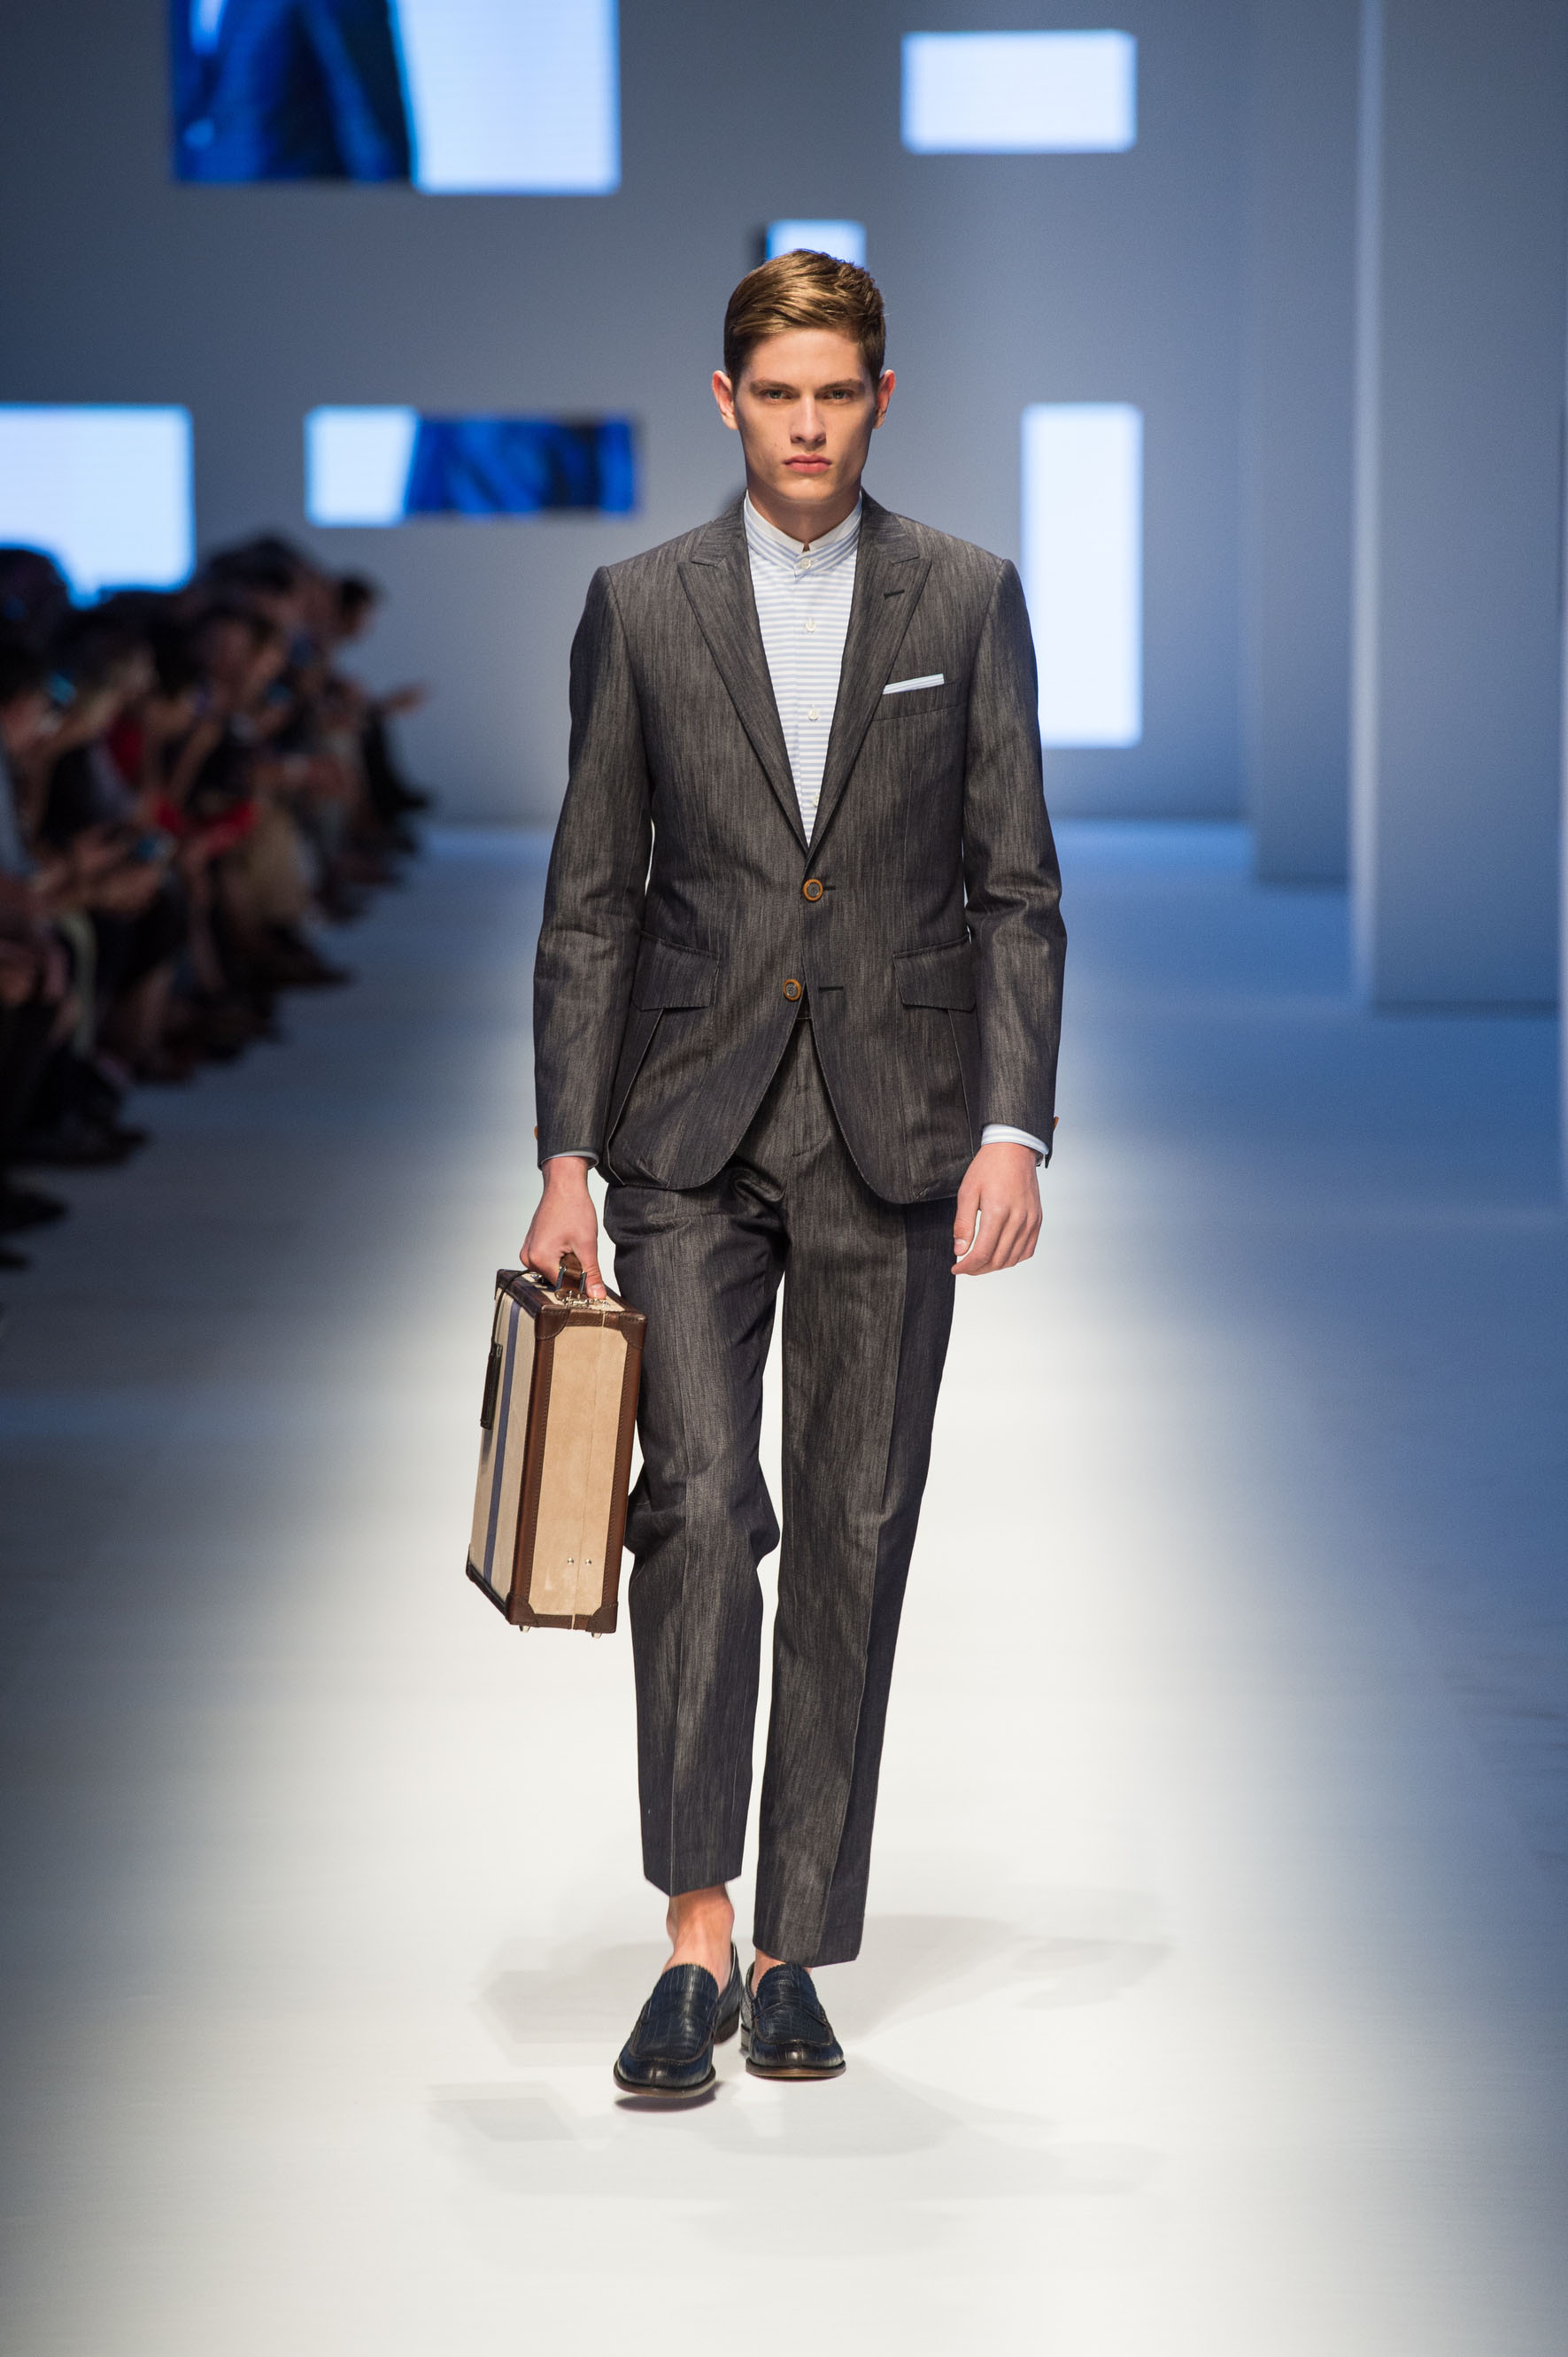 Silk blend denim suit with applied bellows pockets, crocodile loafers and briefcase with contrast color stripe